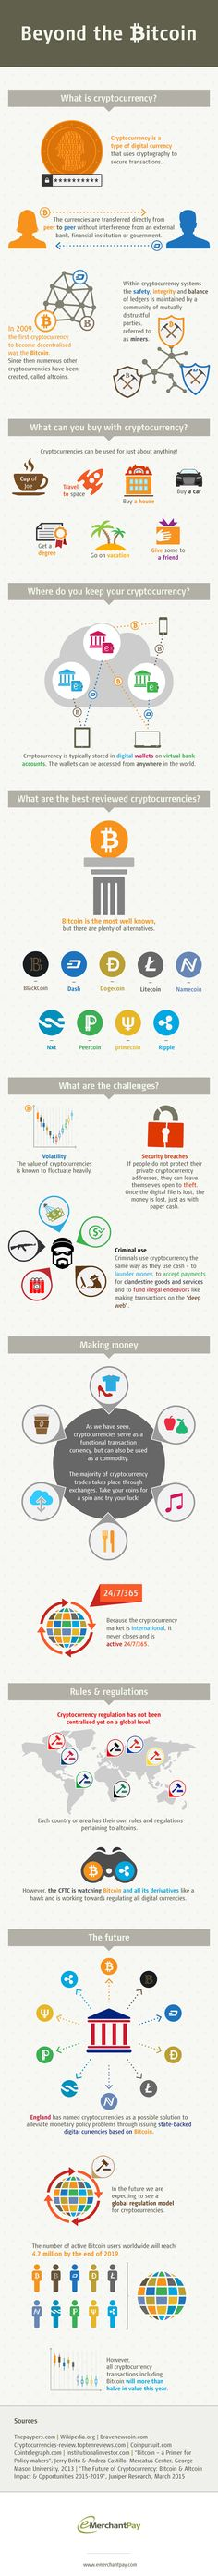 In this infographic by eMerchantPay.com, learn what cryptocurrencies are and how they work. Discover more about the different types of cryptocurrencies, what you can buy with them and many more interesting details.